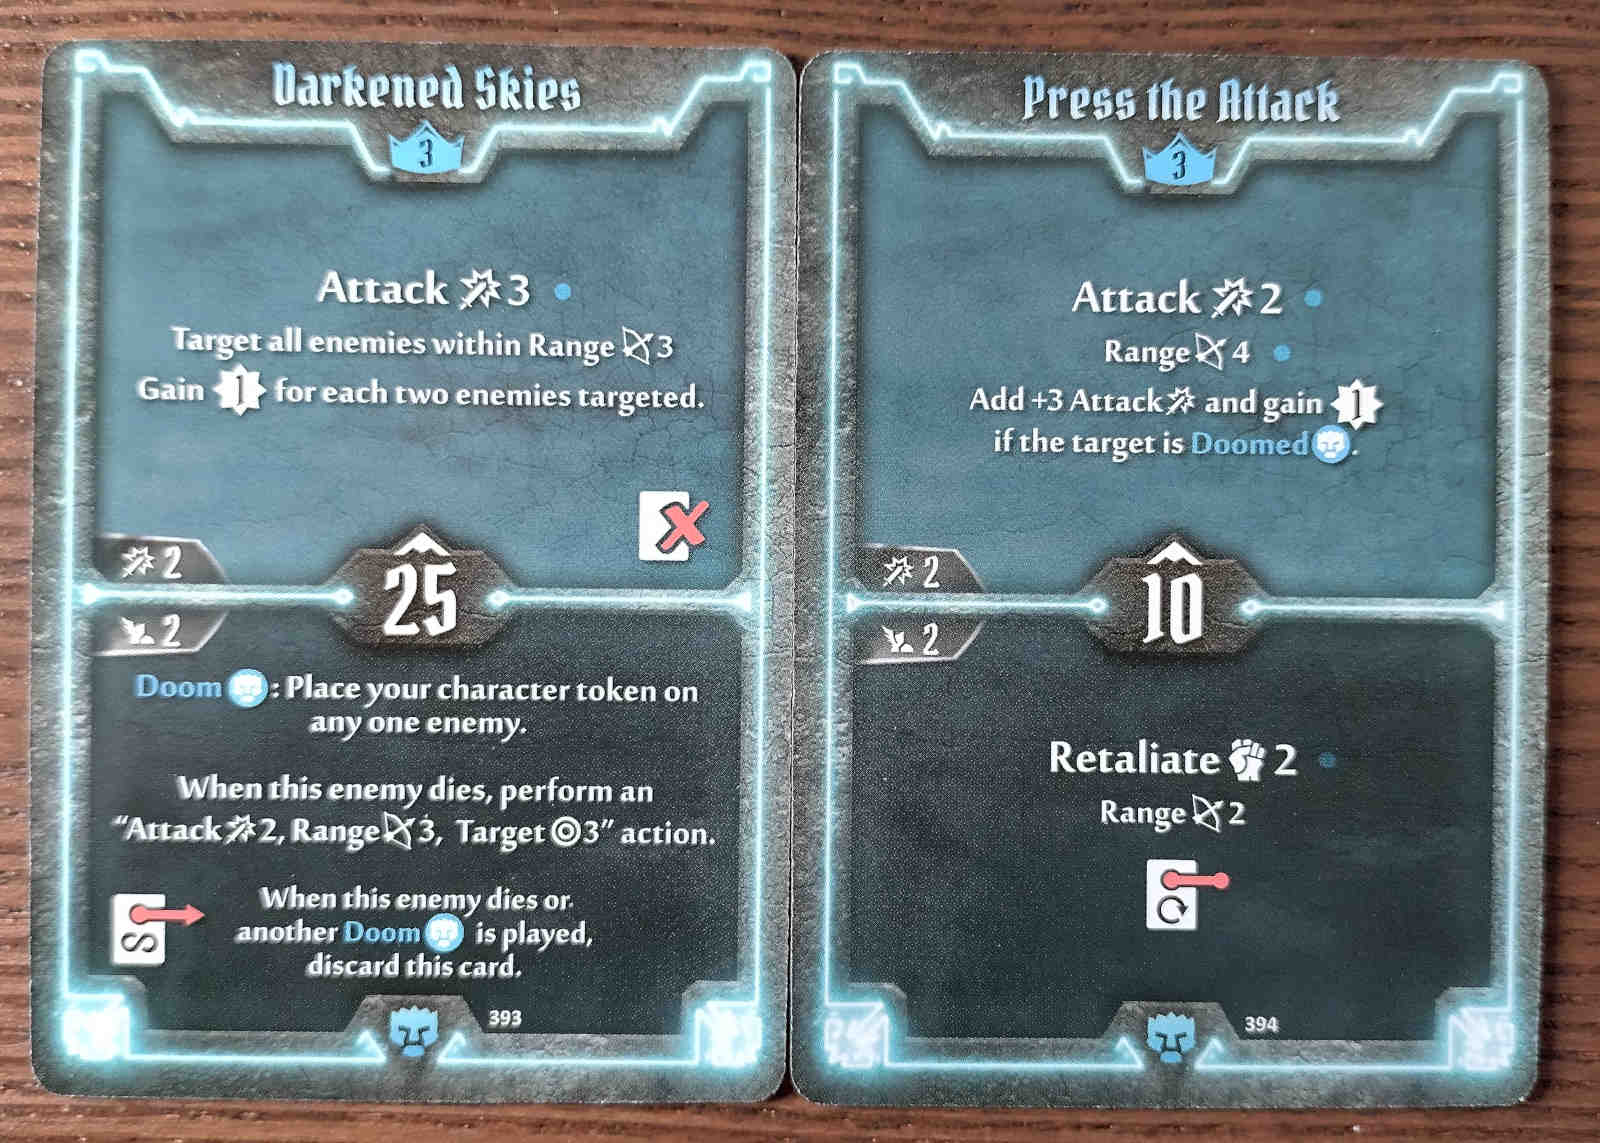 Level 3 Doomstalker cards - Darkened Skies and Press the Attack